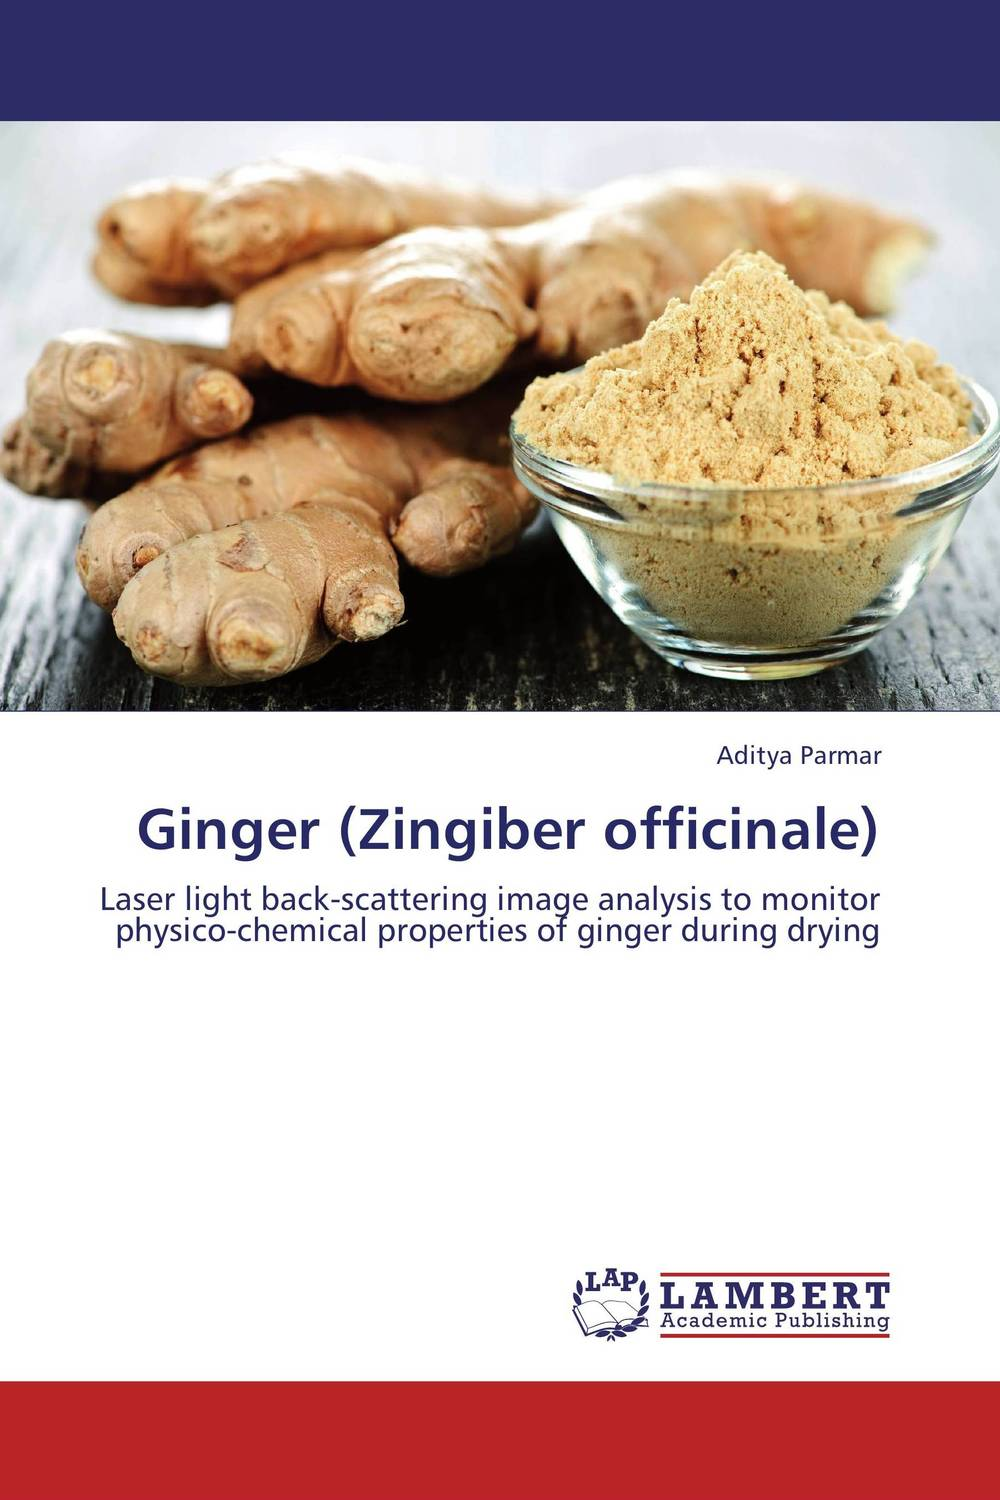 Ginger (Zingiber officinale) oil separator integrates well the different techniques of oil separation in the design of its products